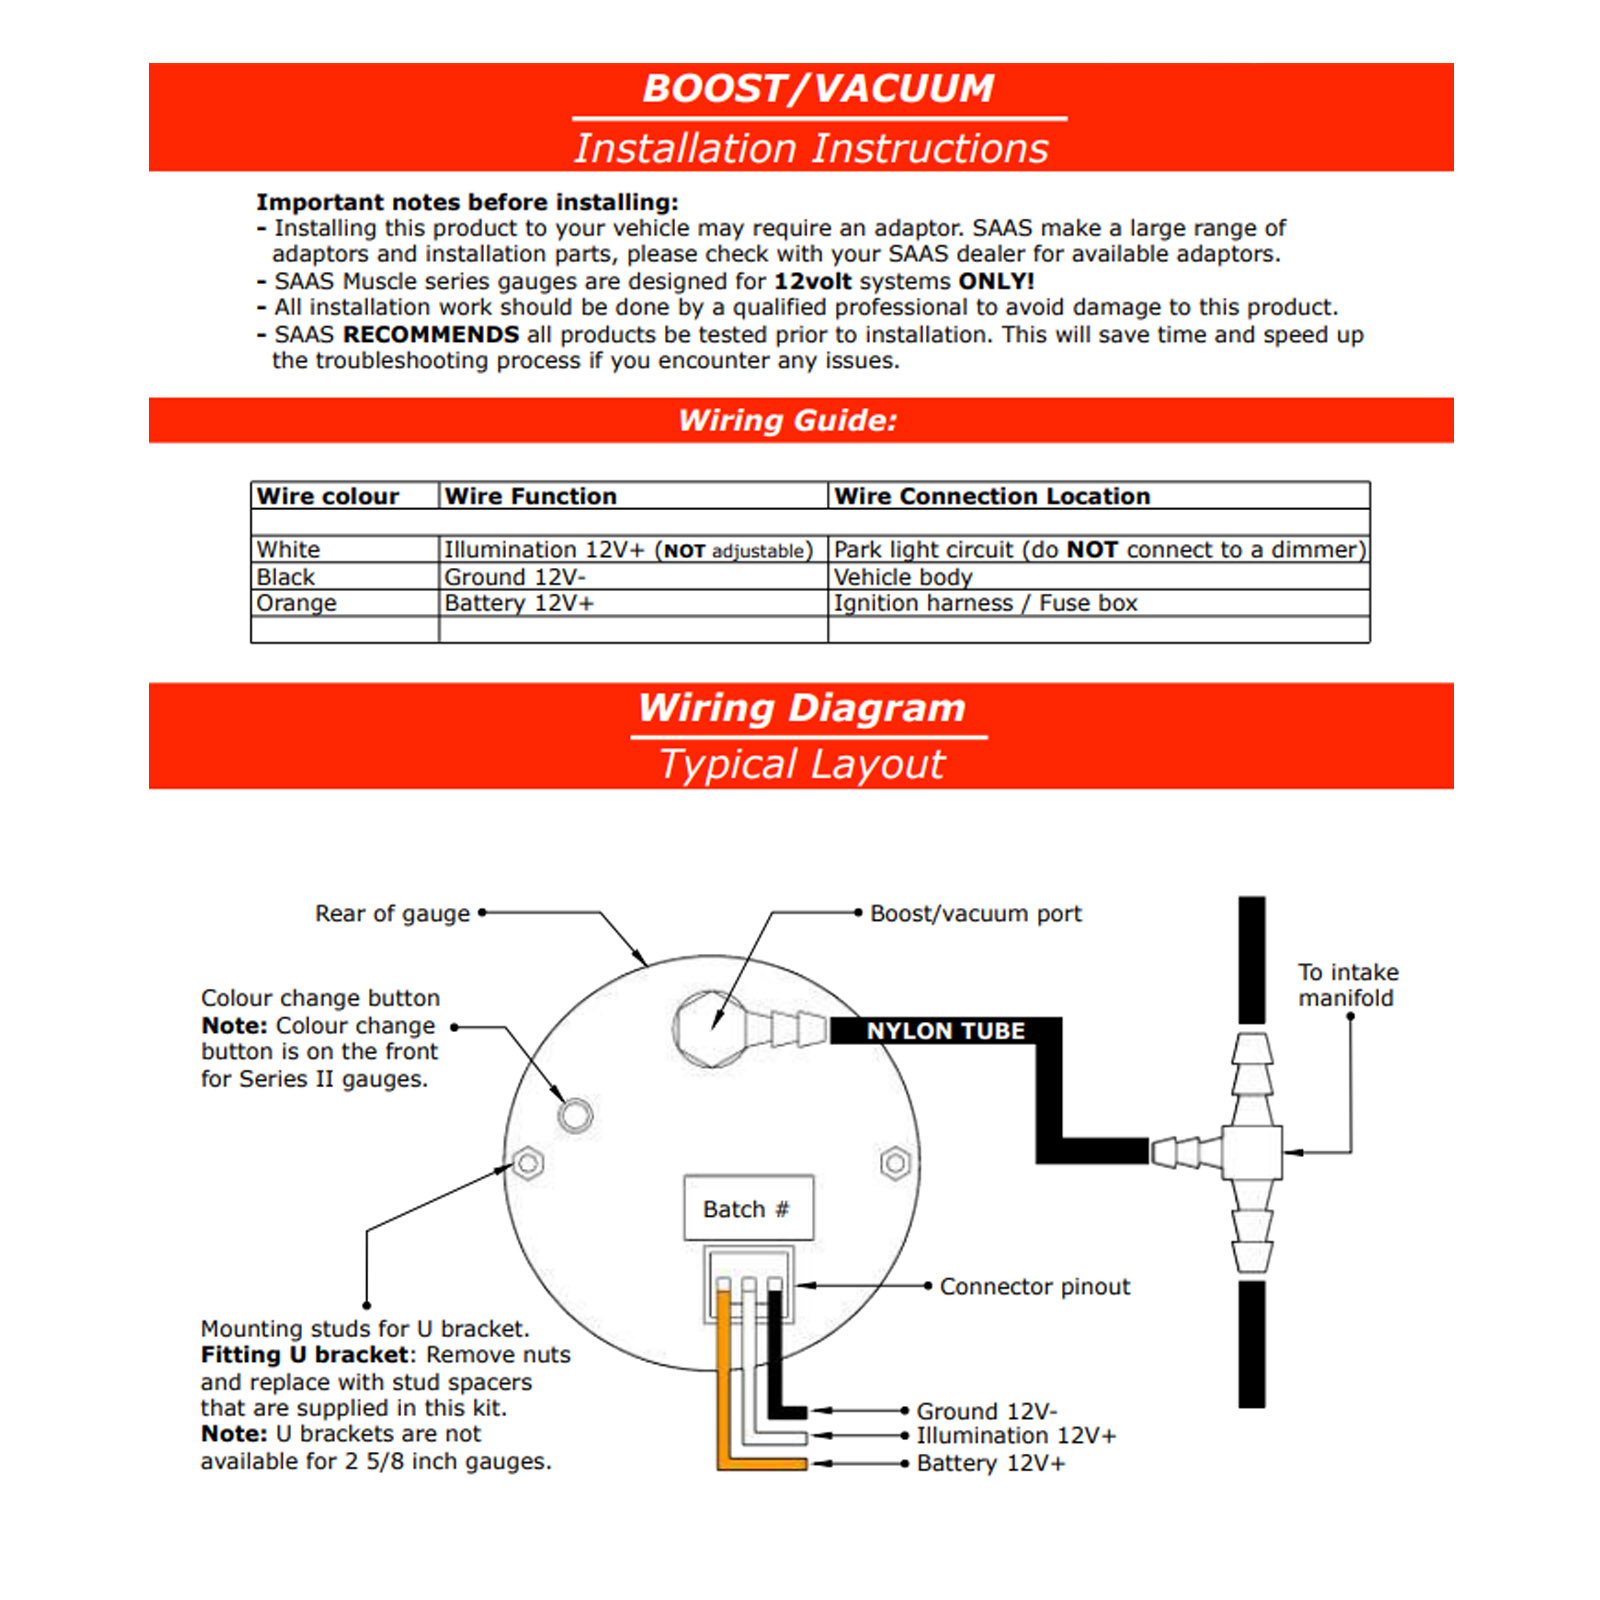 SGTBD52WSGOP52WK1041 saas diesel boost 0 30psi and oil pressure 0 140psi gauges plus saas boost gauge wiring diagram at soozxer.org